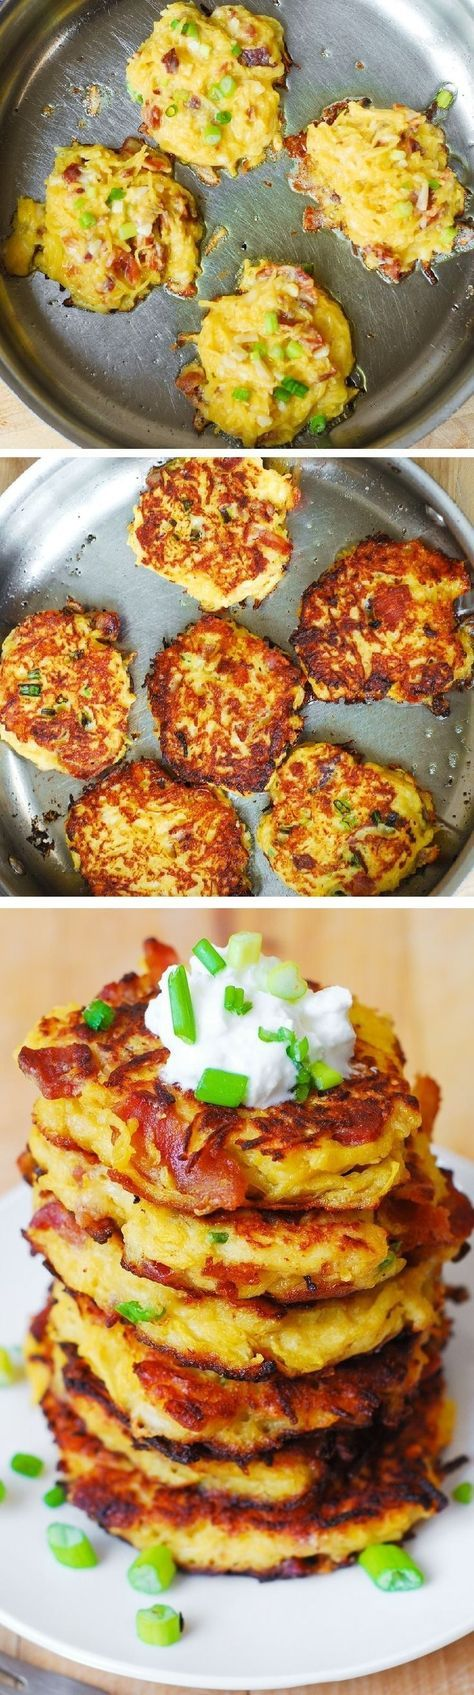 Bacon, spaghetti squash and parmesan fritters sub flour for almond flour or ground pork rinds to keep it keto